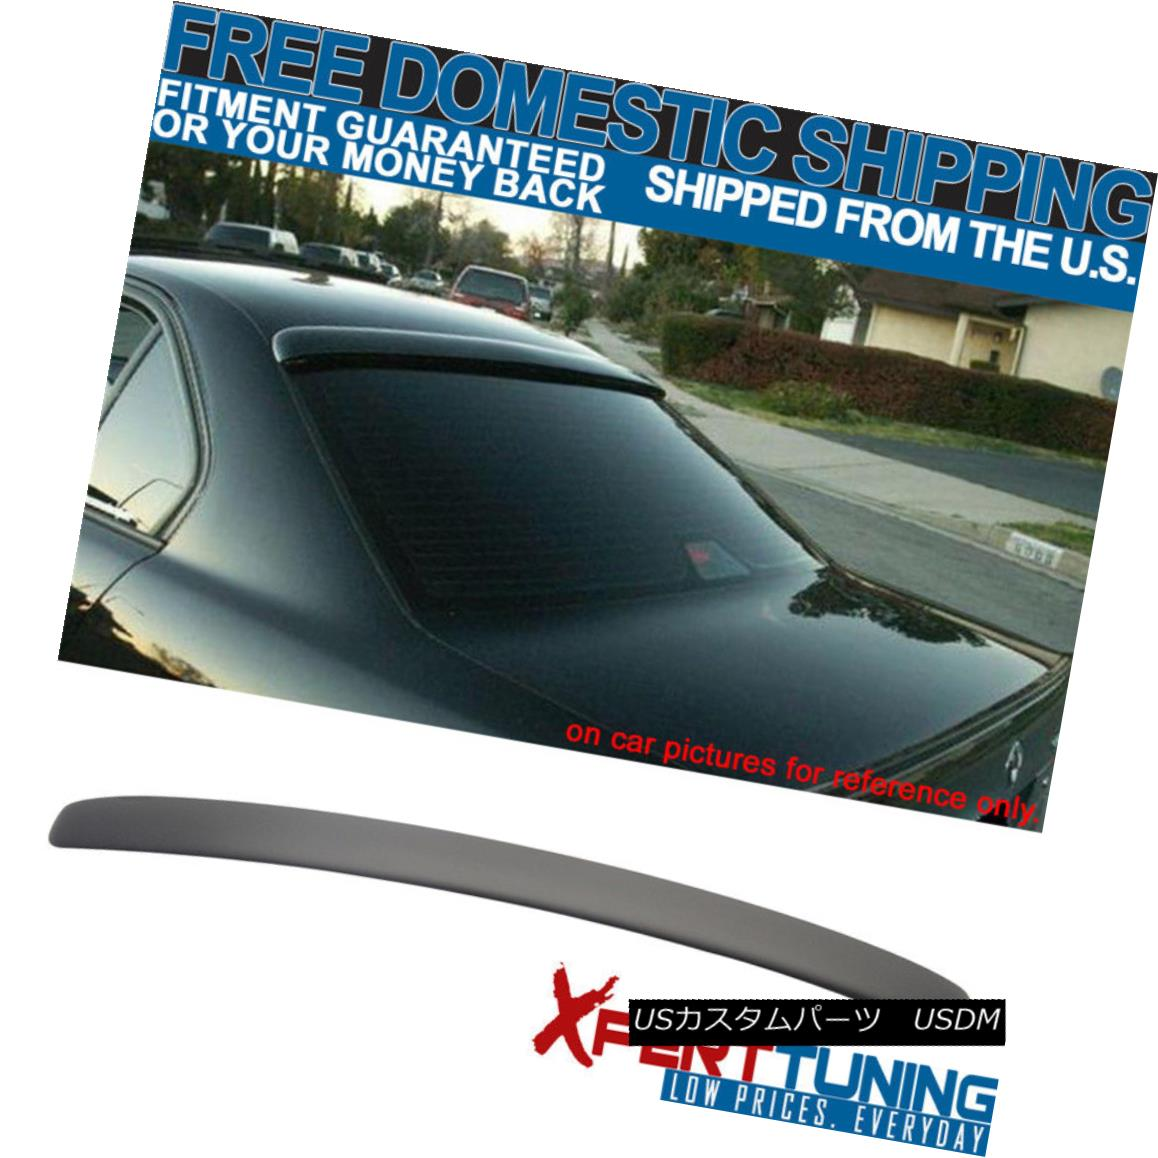 外装・エアロパーツ, リアスポイラー  Fit 95-02 BMW E38 7 Series AC Style Rear Roof Wing Spoiler Painted Matte Black 95-02 BMW E38 7AC